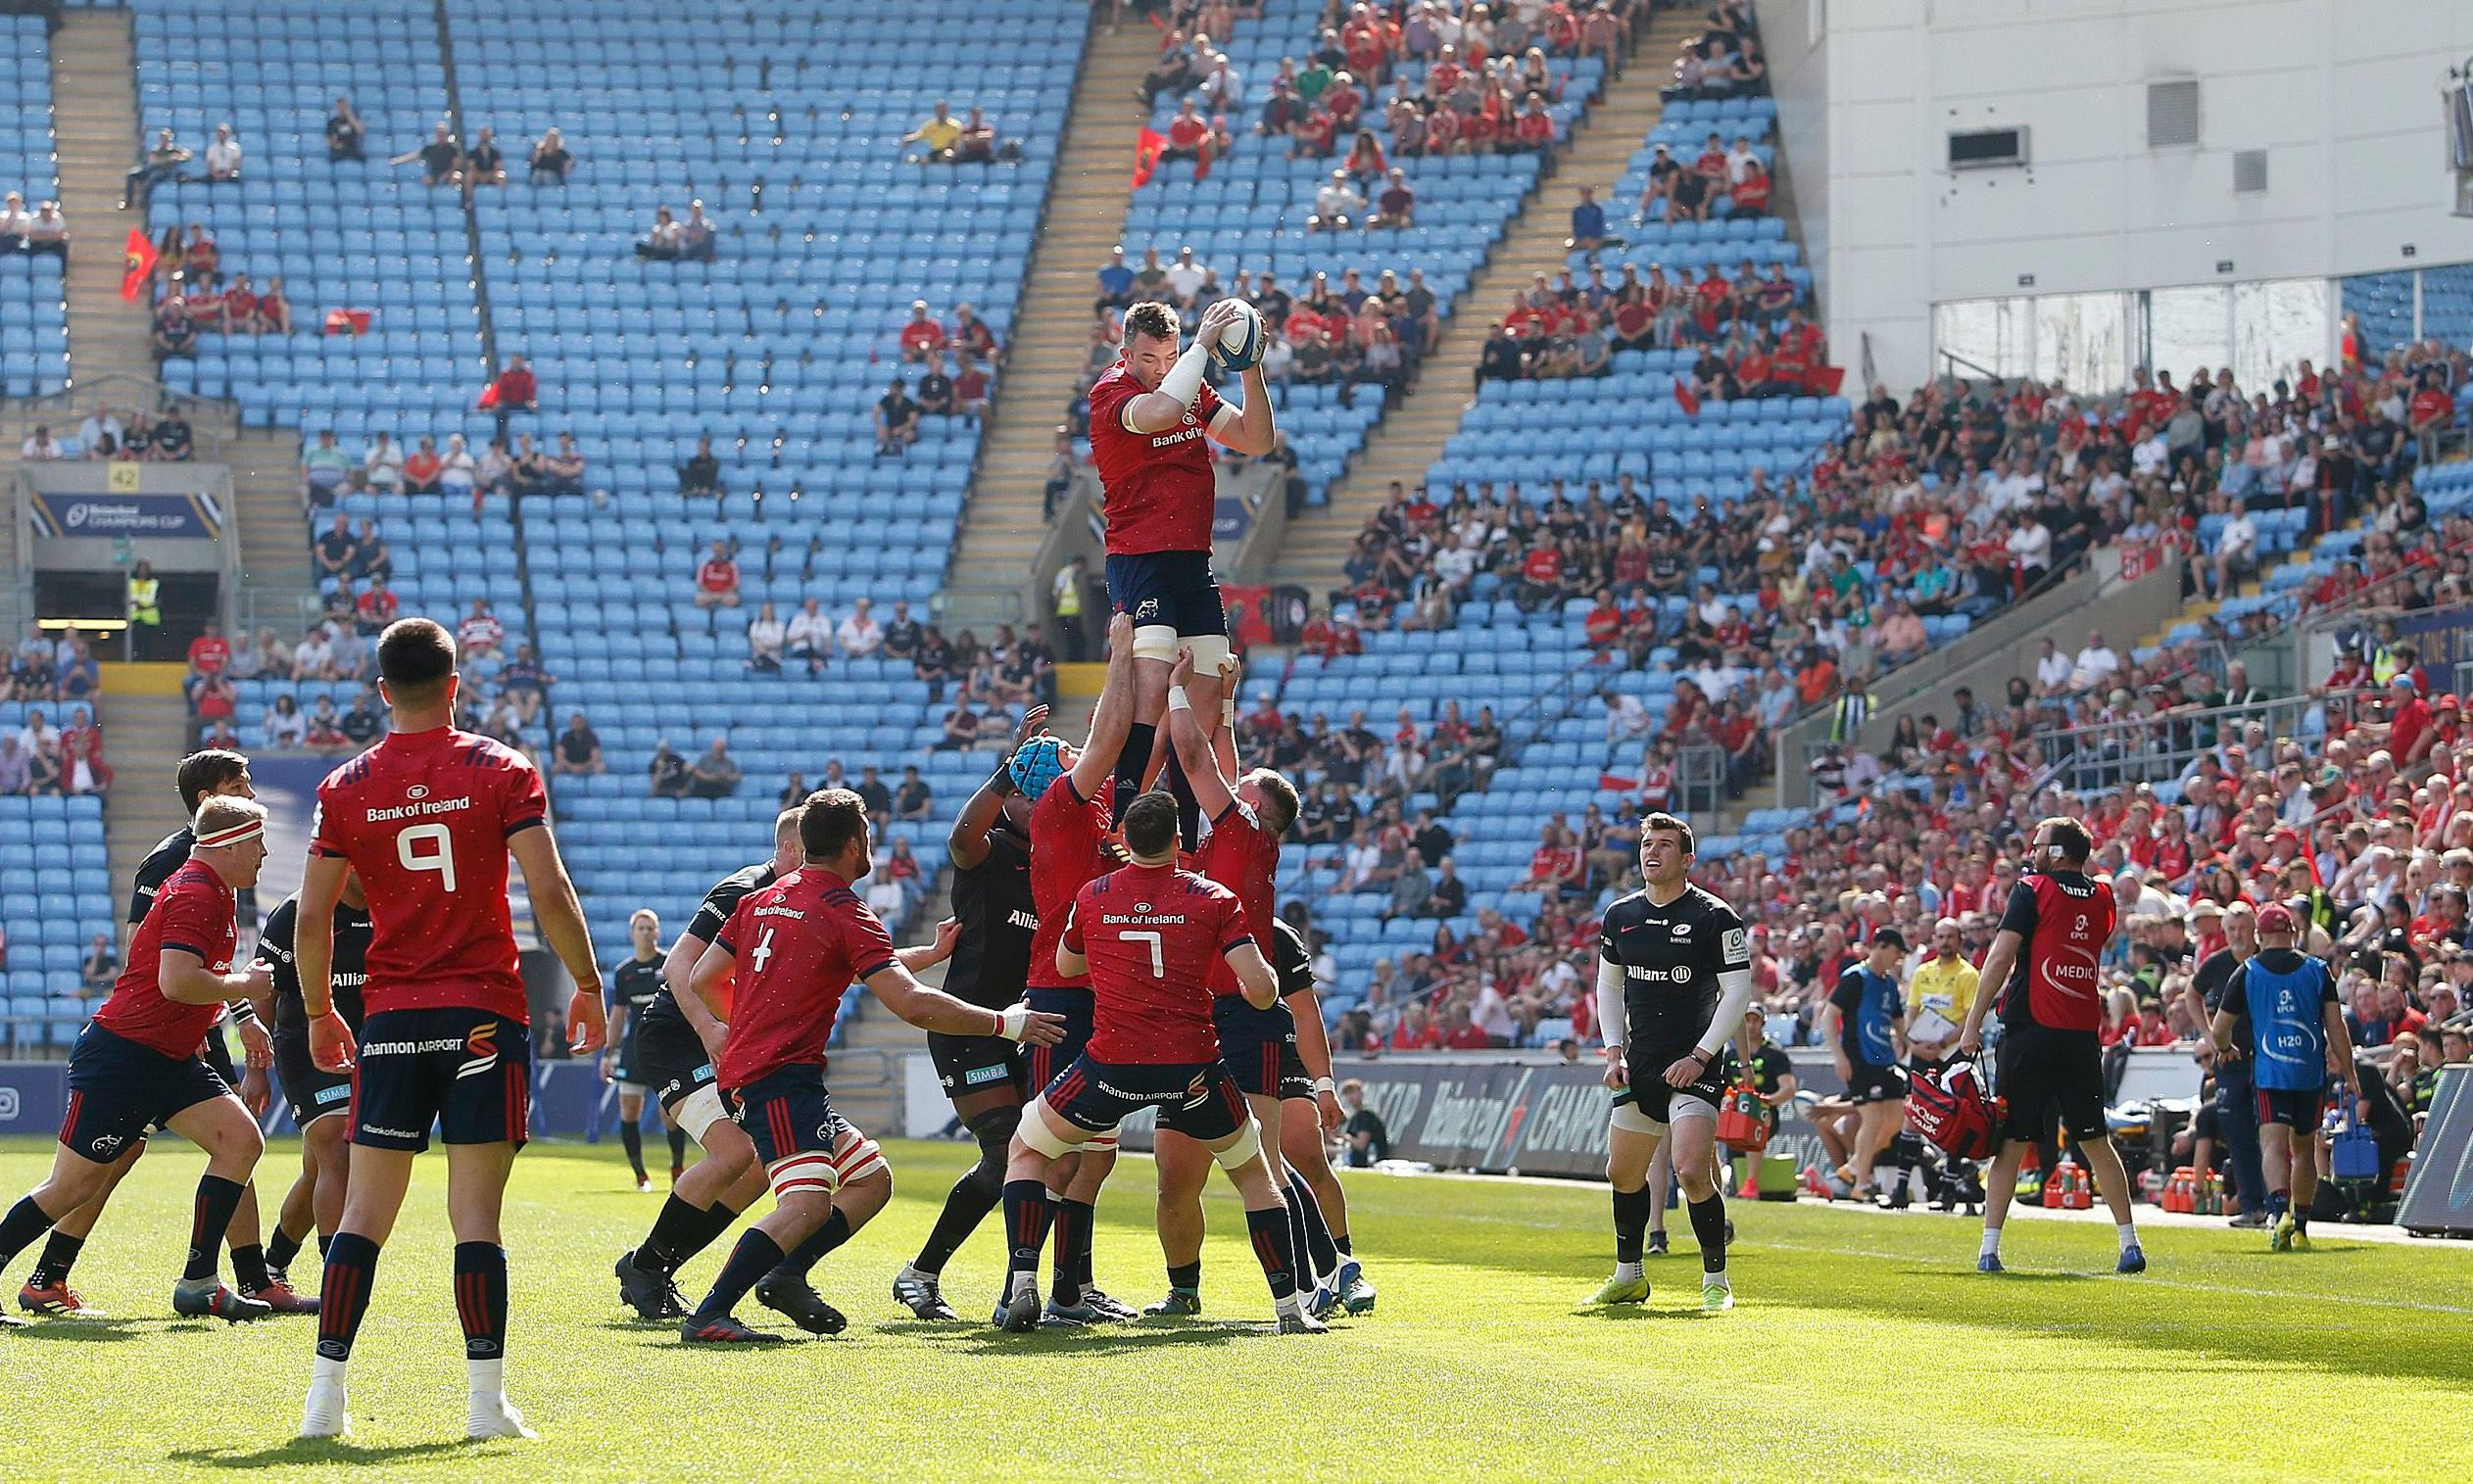 Empty seats leave Champions Cup licking its wounds and looking at rejig